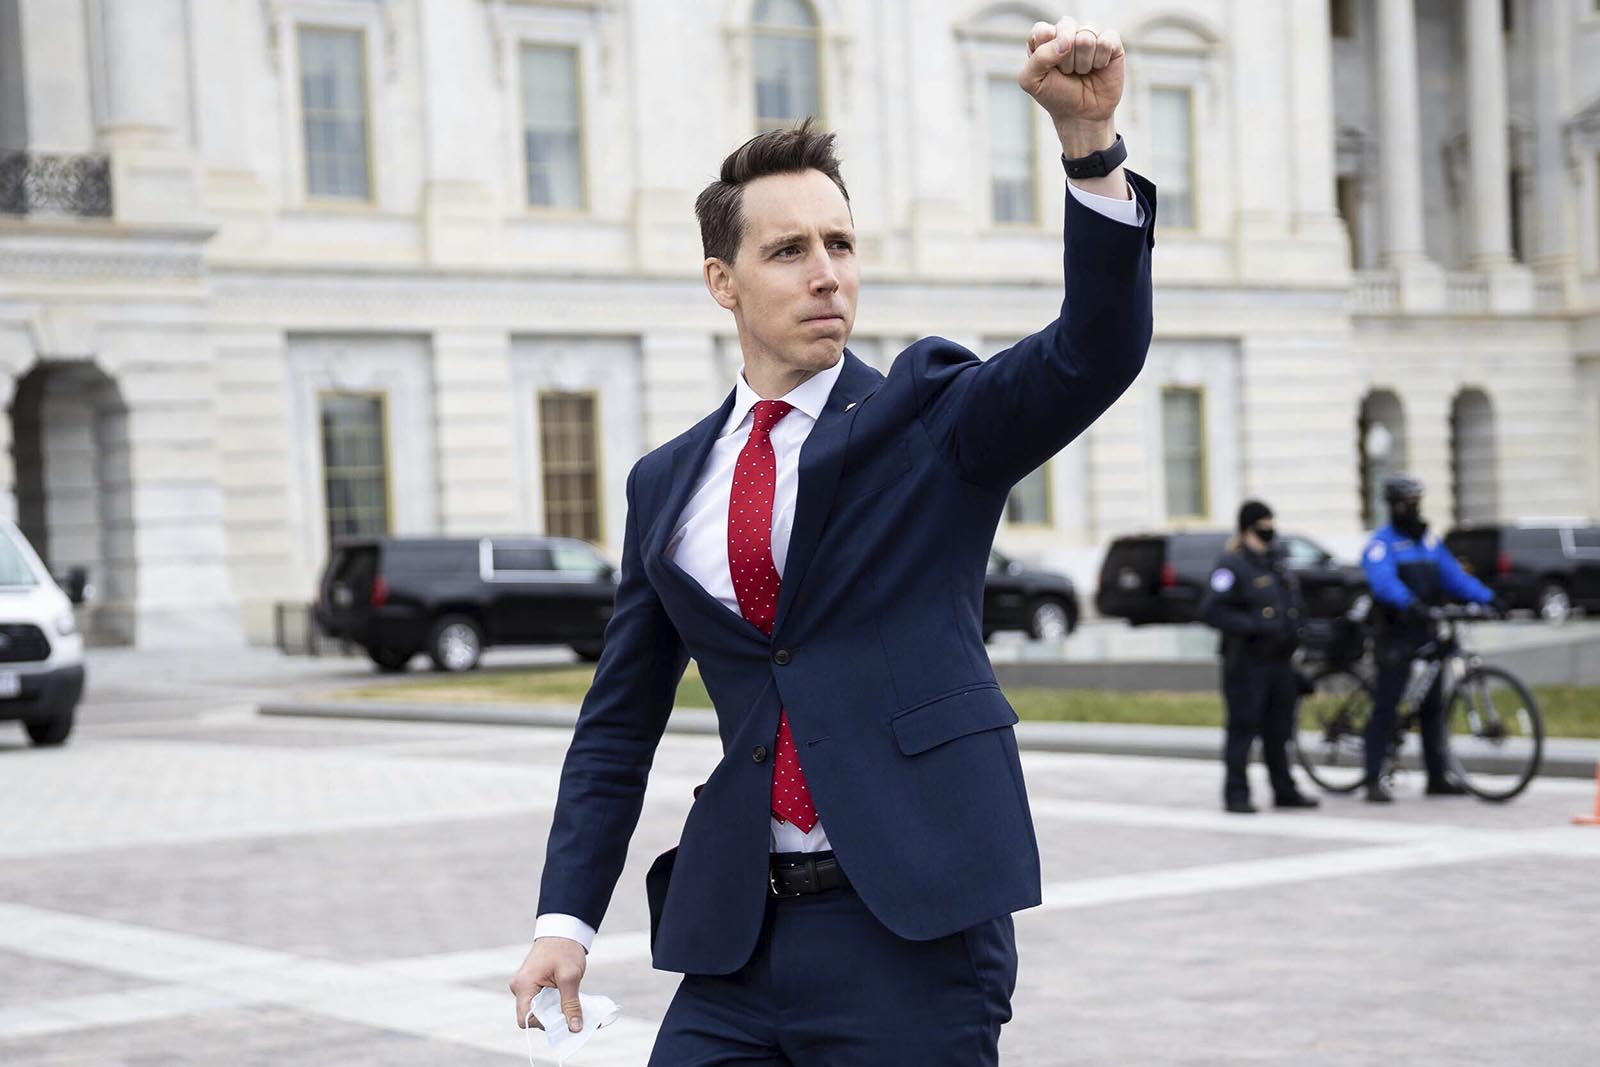 Sen. Josh Hawley finds new publisher after Simon & Schuster dropped book